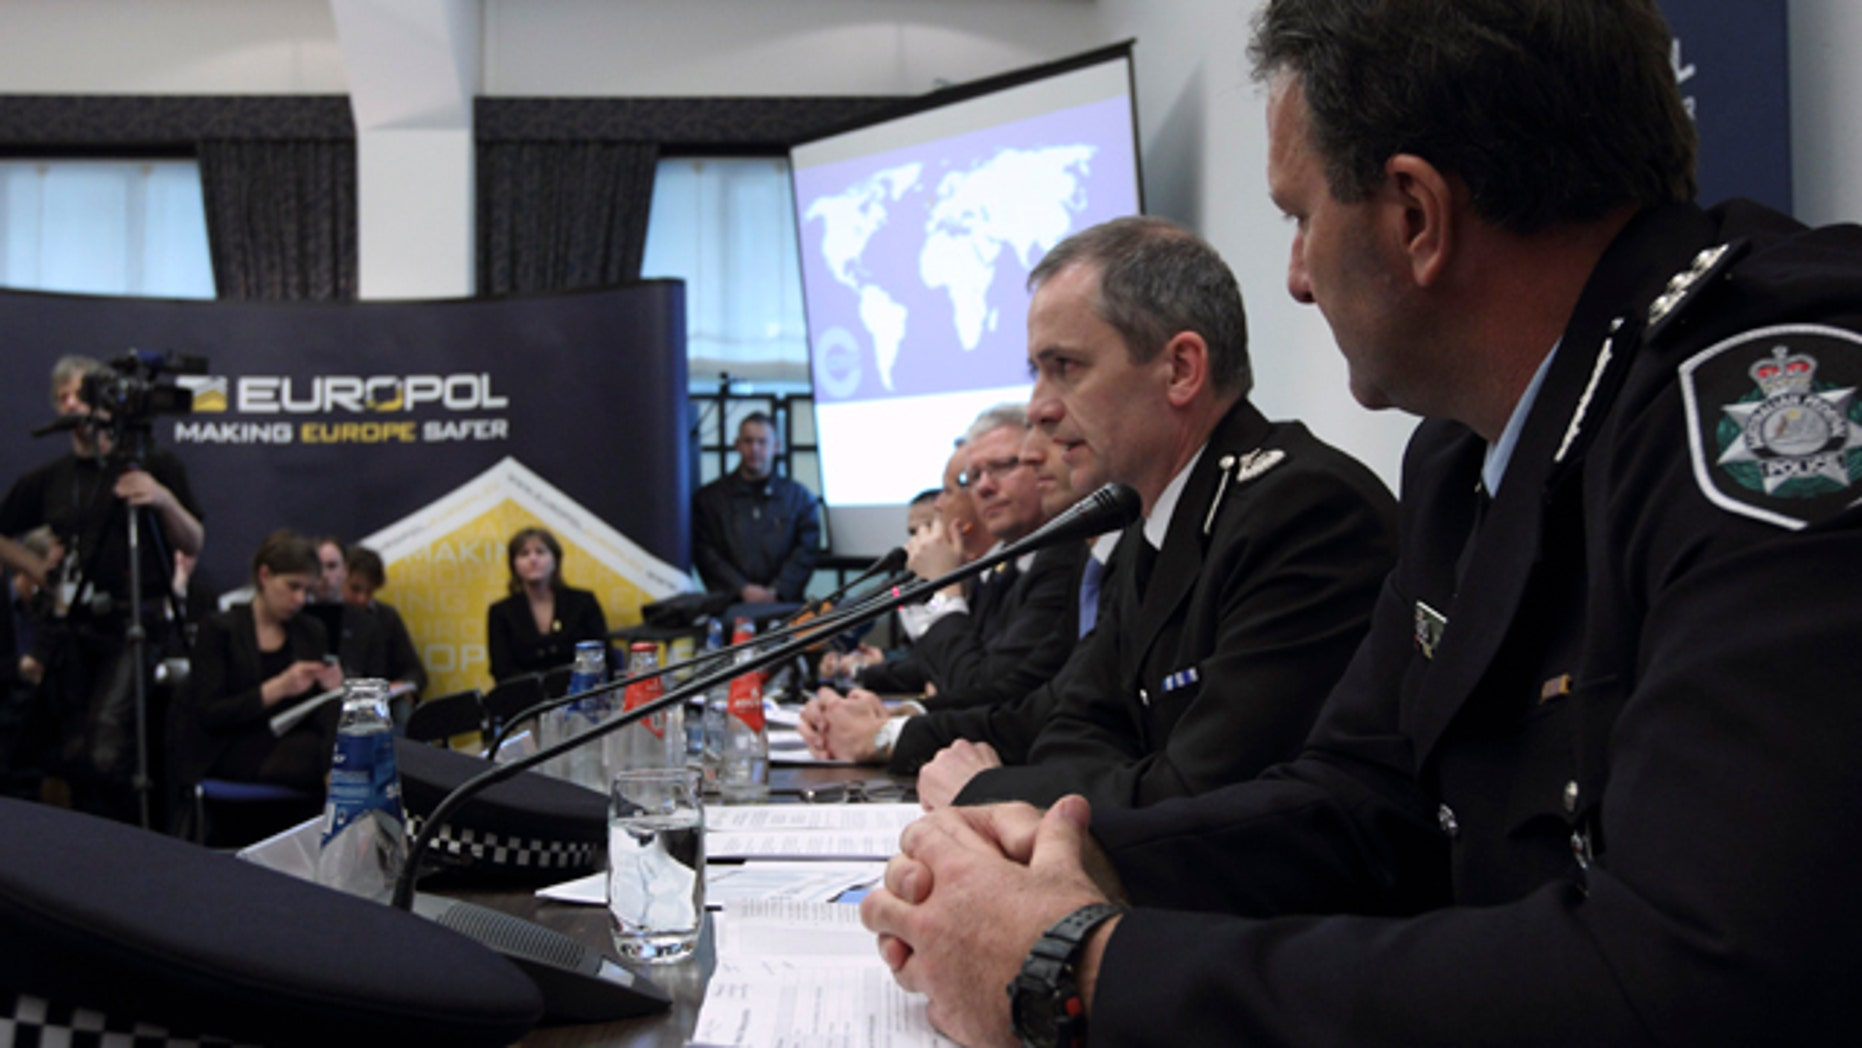 March 16: From left, Grant Edwards, Australian Federal Police, and Peter Davies, of the UK Child Exploitation and Online Protection Center, elaborate on the details of arrests linked to a global child abuse ring during a press conference in The Hague.